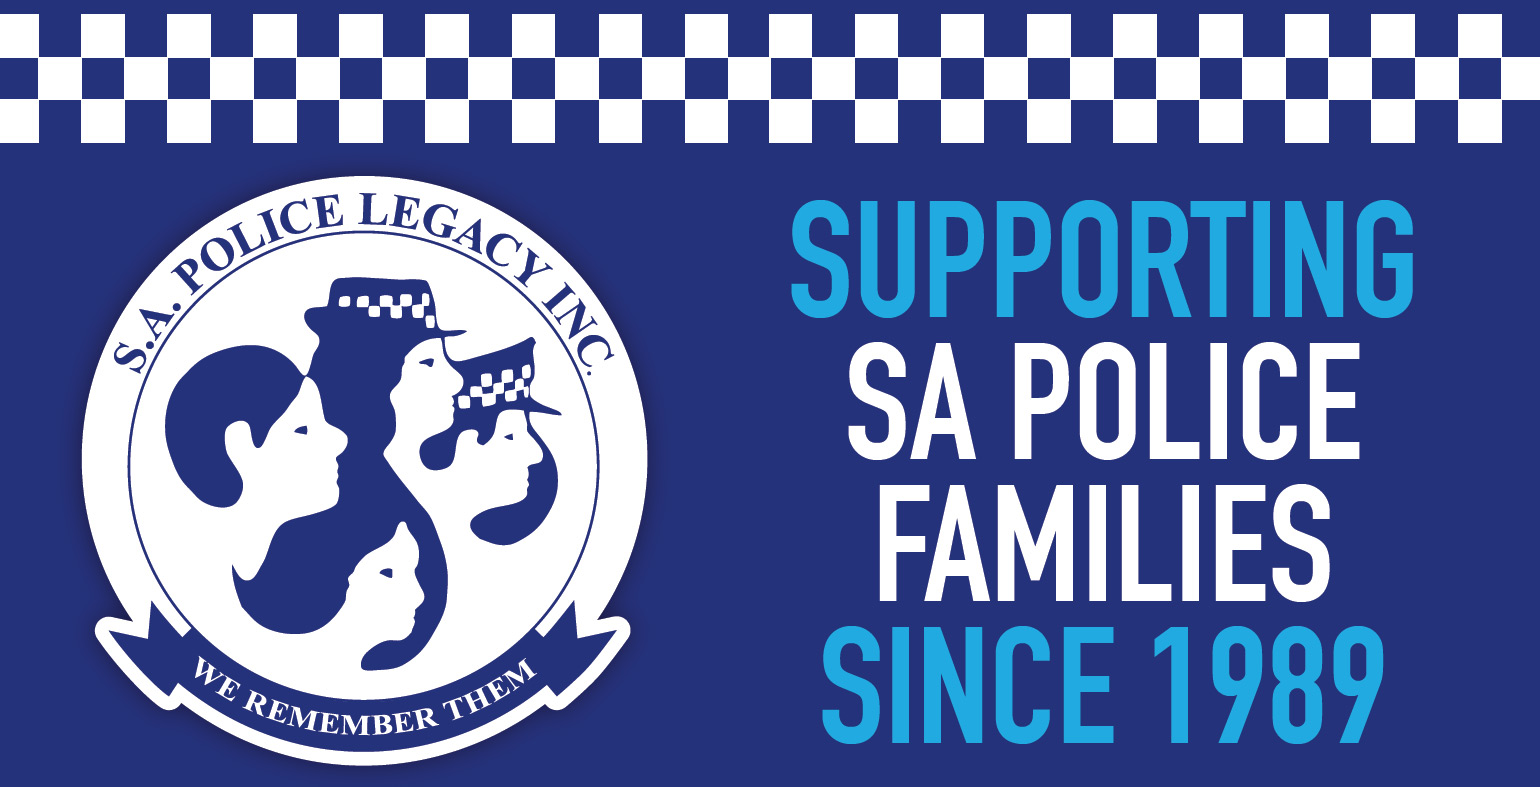 police-legacy-banner